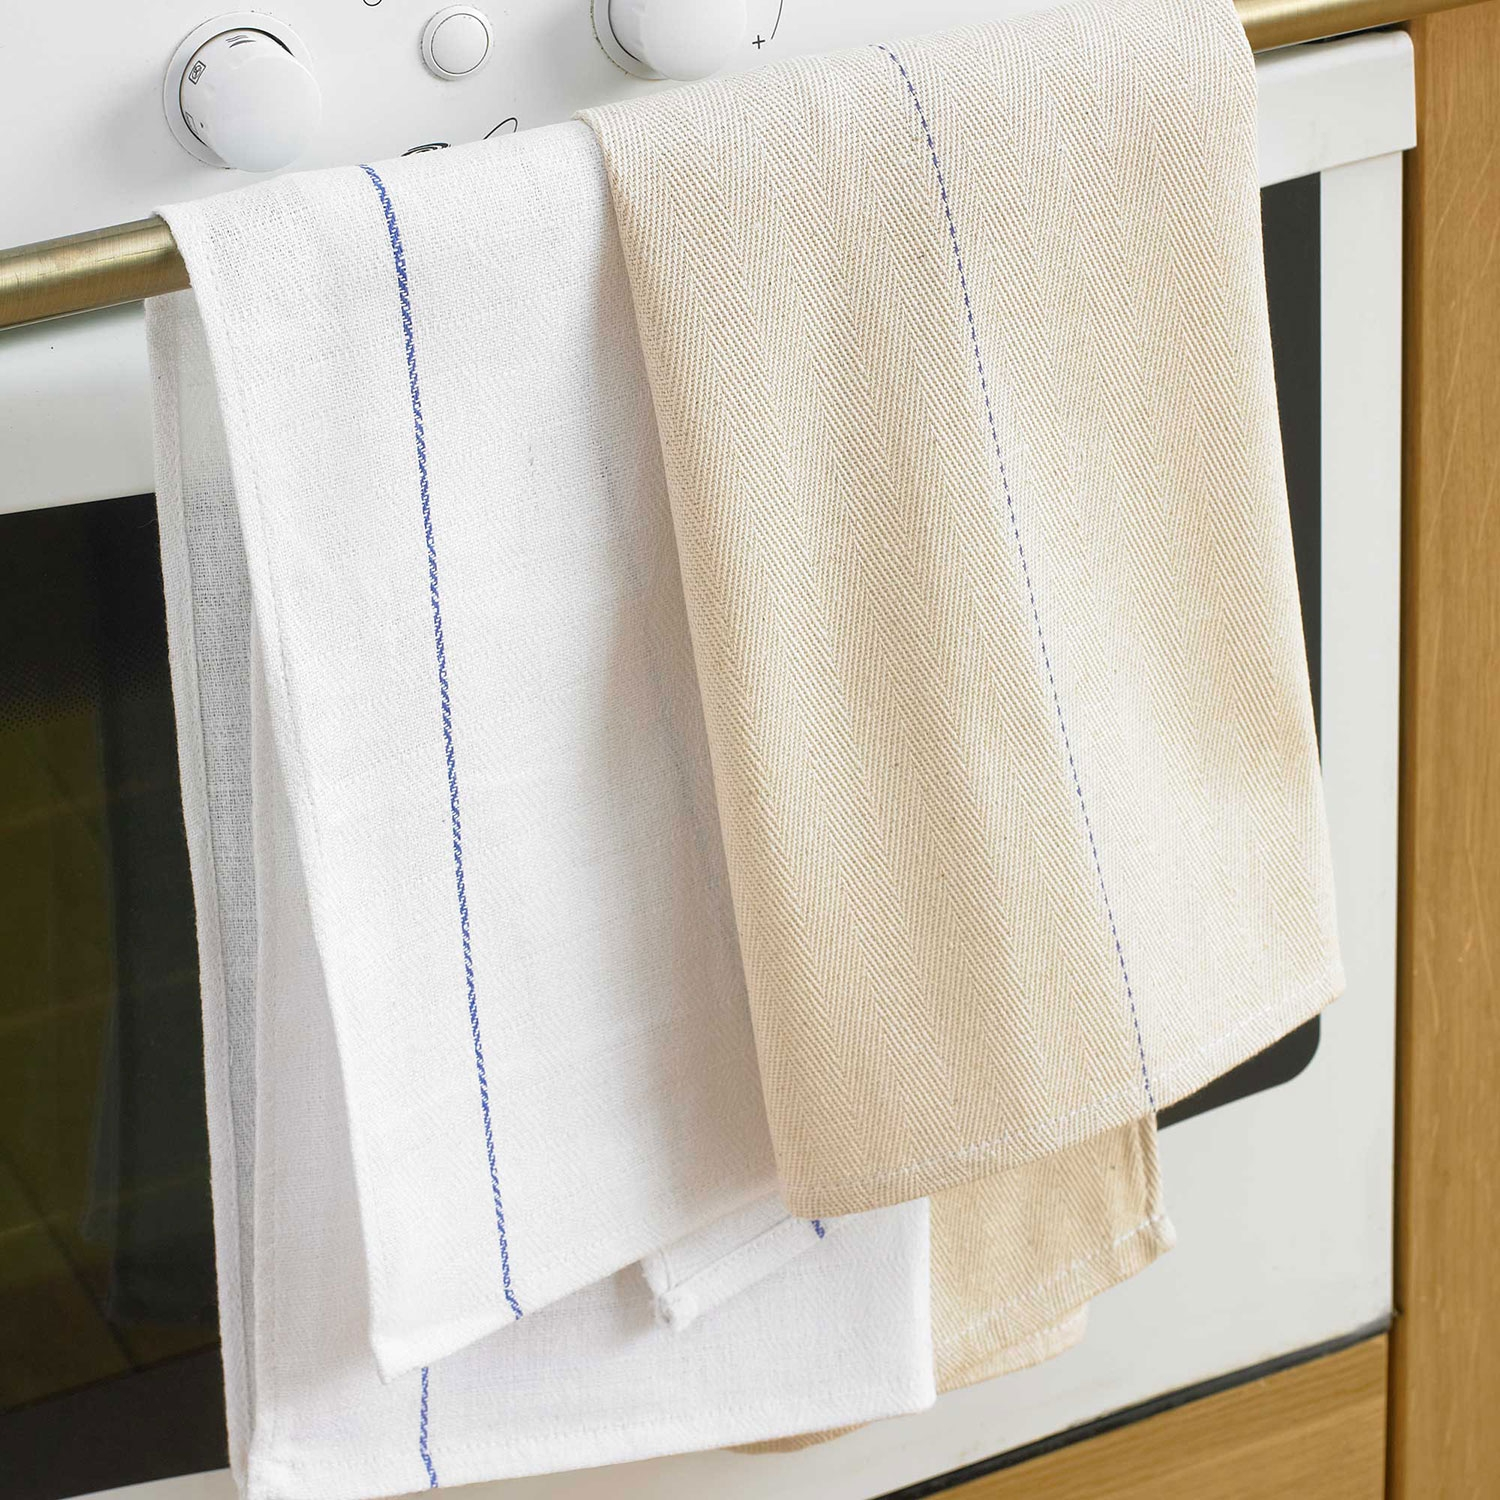 Oven-waiters-cloth-hanging_5.jpg